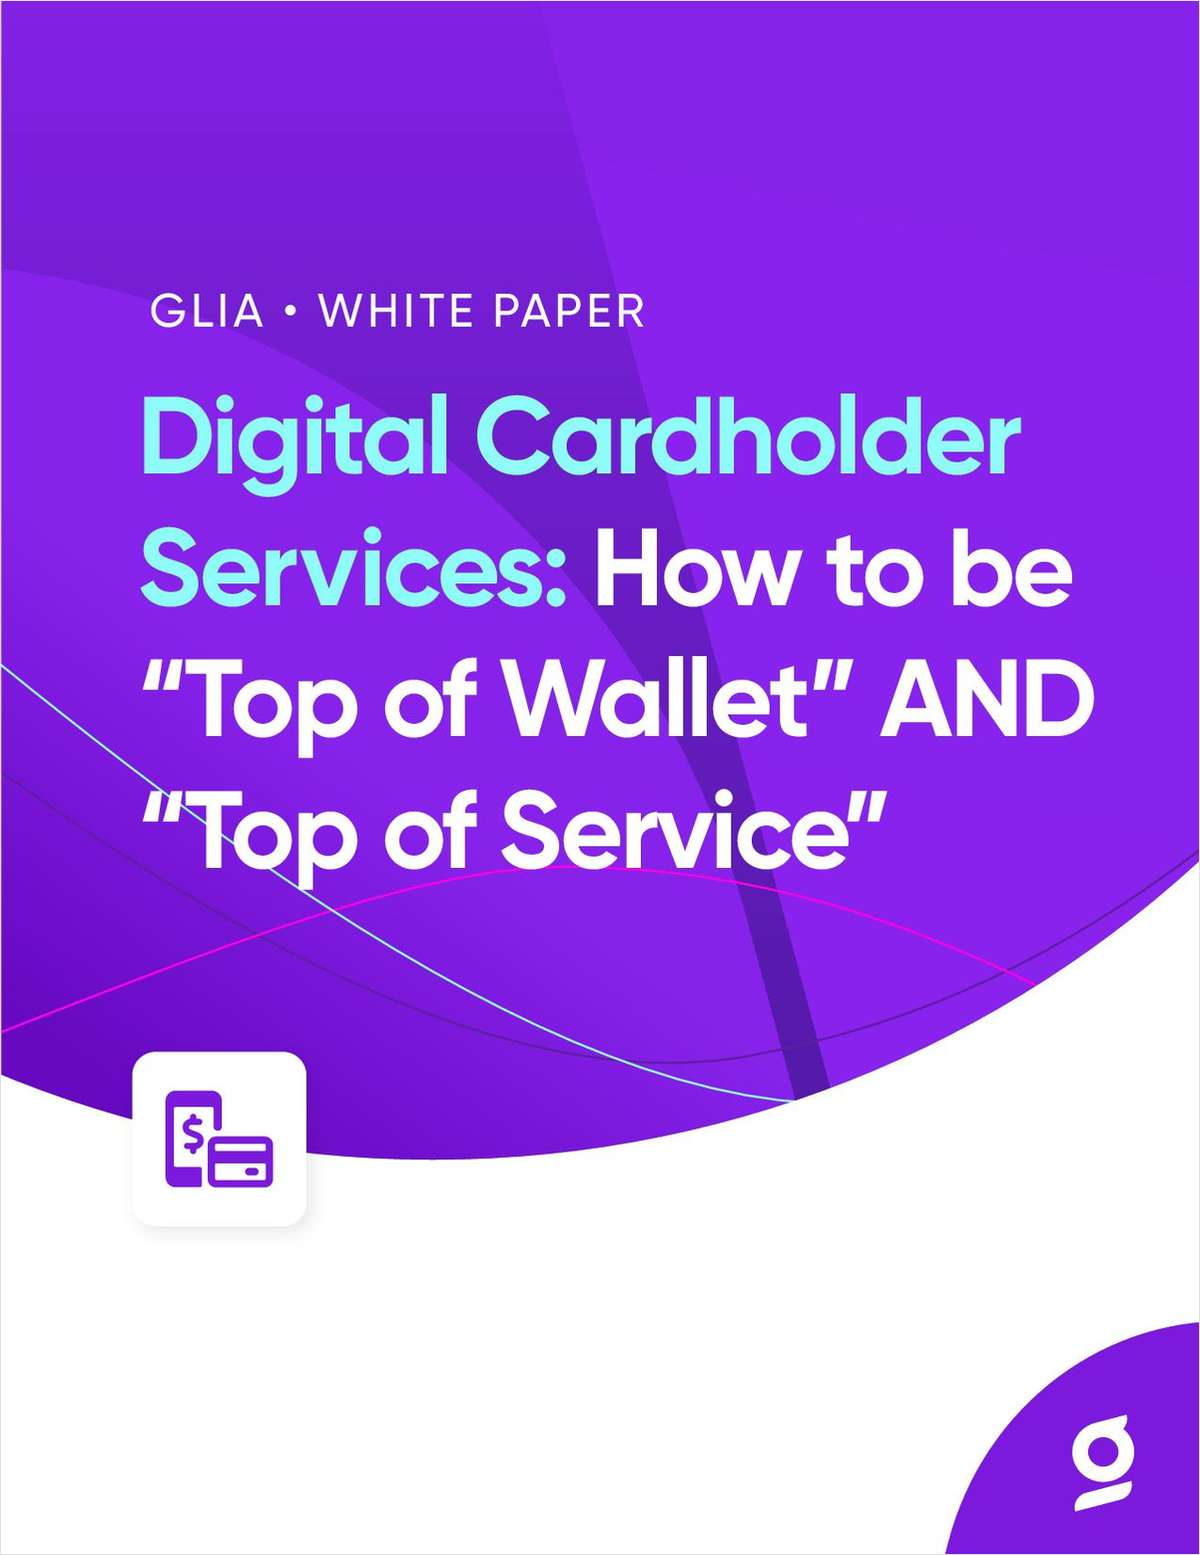 How to Boost Cardholder Utilization & Loyalty with Digital Customer Service